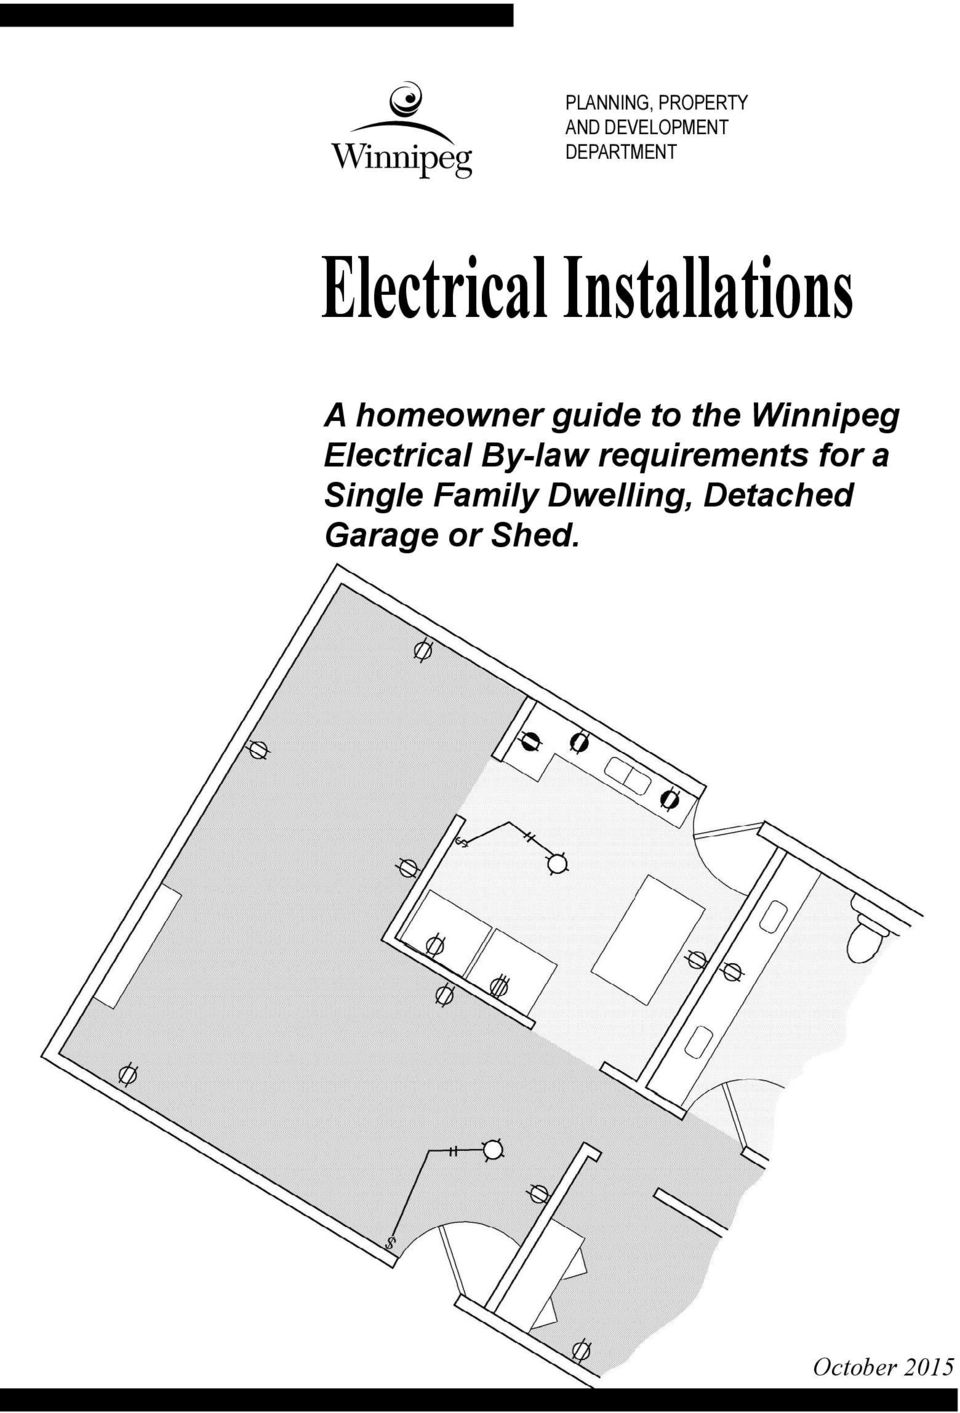 Winnipeg Electrical By-law requirements for a